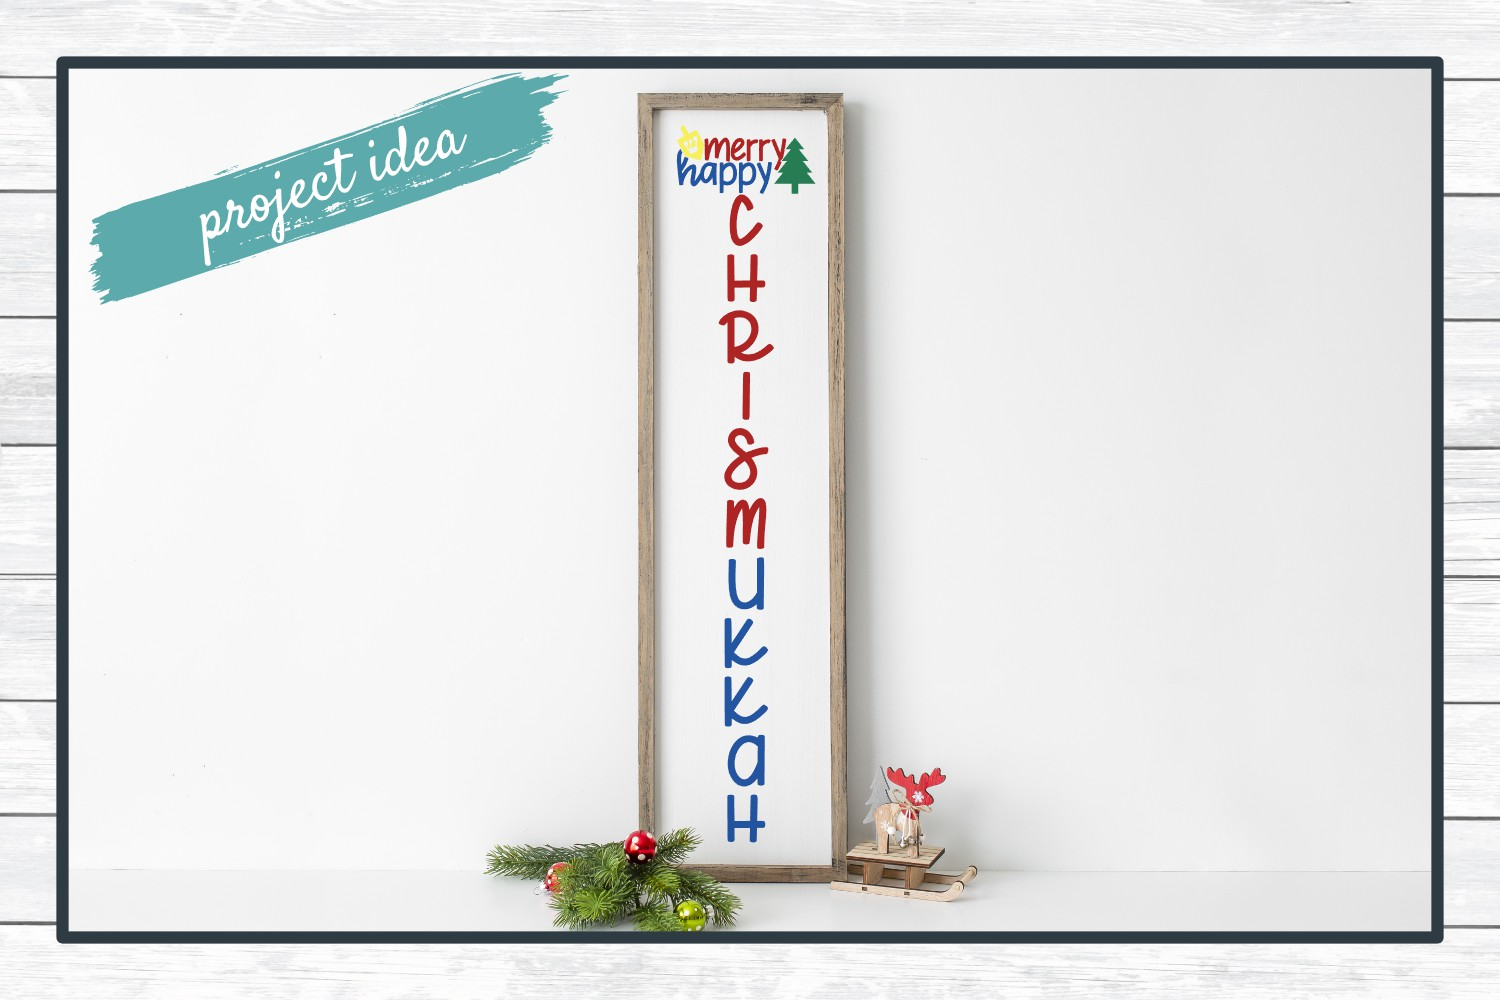 Merry Happy Chrismukkah Holiday Porch Sign Design, SVG example image 2